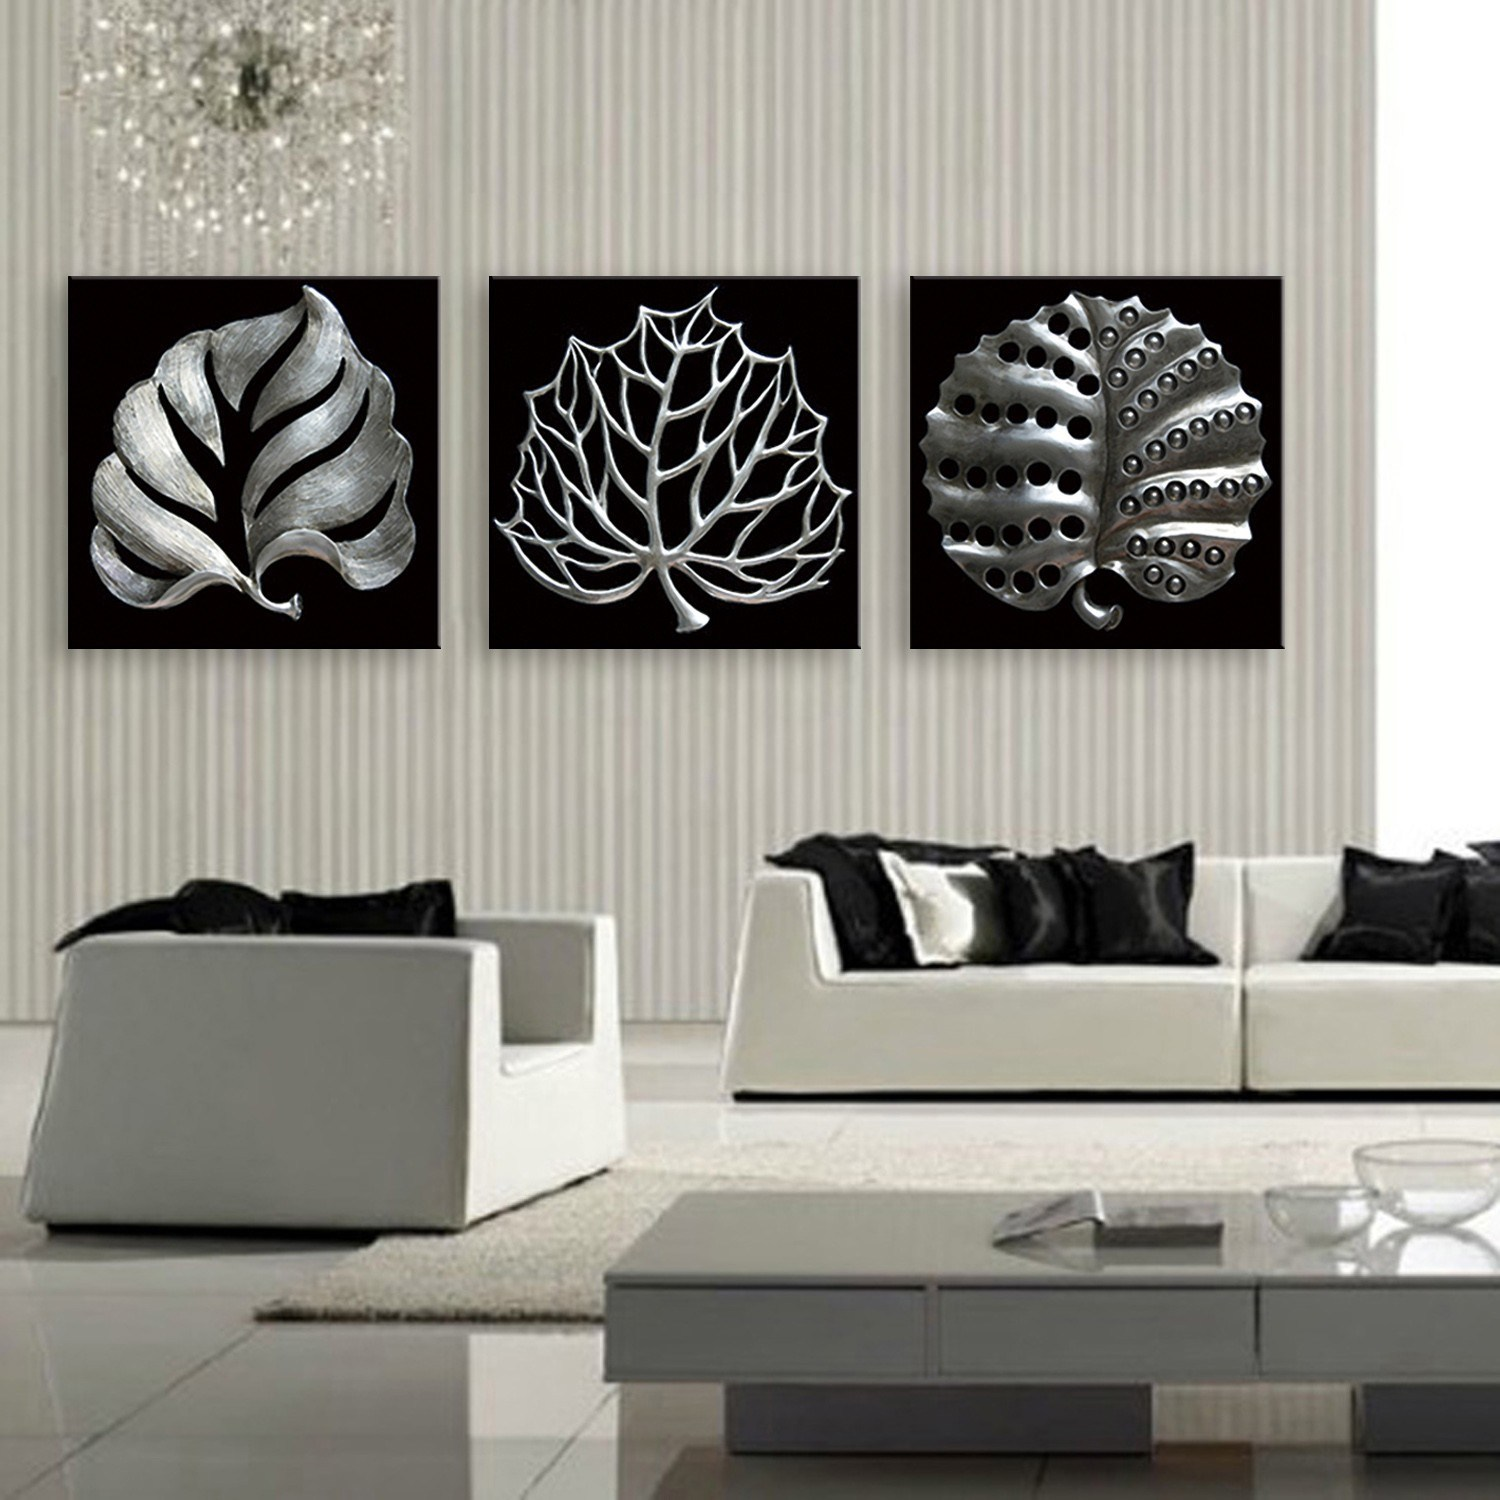 Home Decoration Wall Art Giclee Printing Custom Design Canvas Oil Painting From Digital Photo